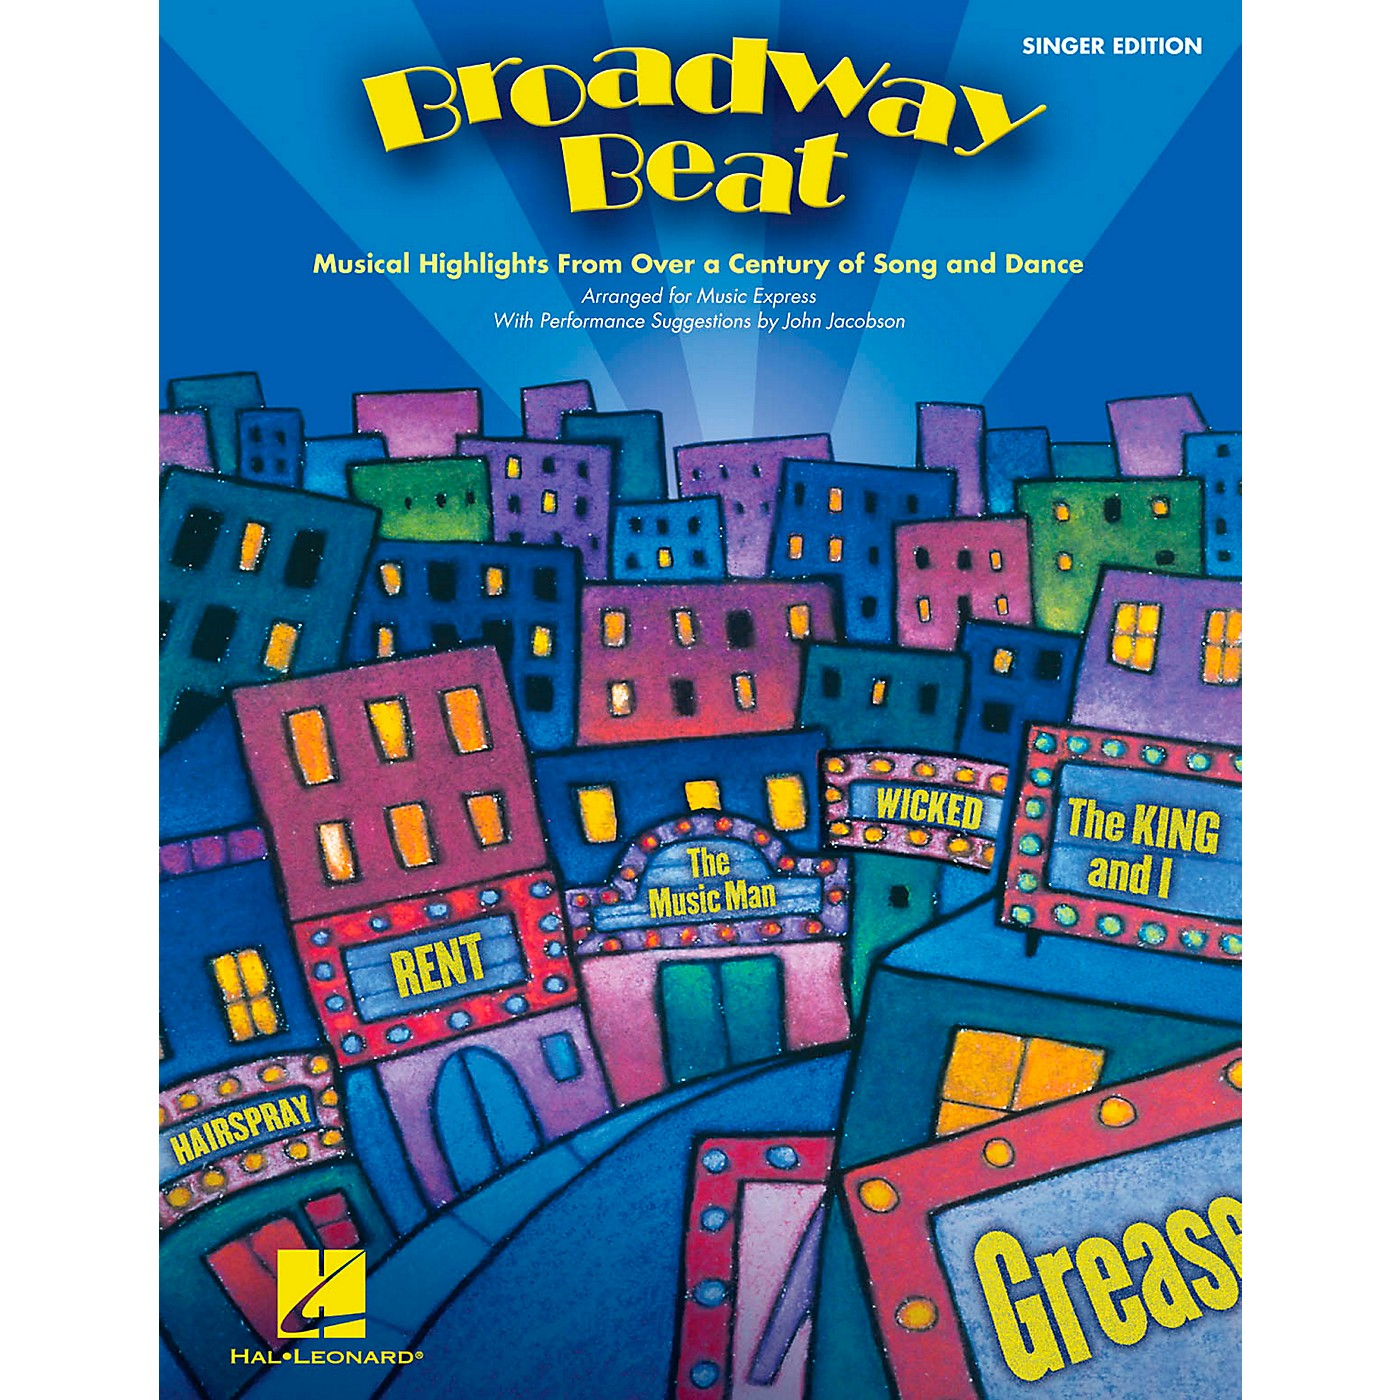 Hal Leonard Broadway Beat - Musical Highlights from Over a Century of Song and Dance, Singer's Edition (20 Pak) thumbnail